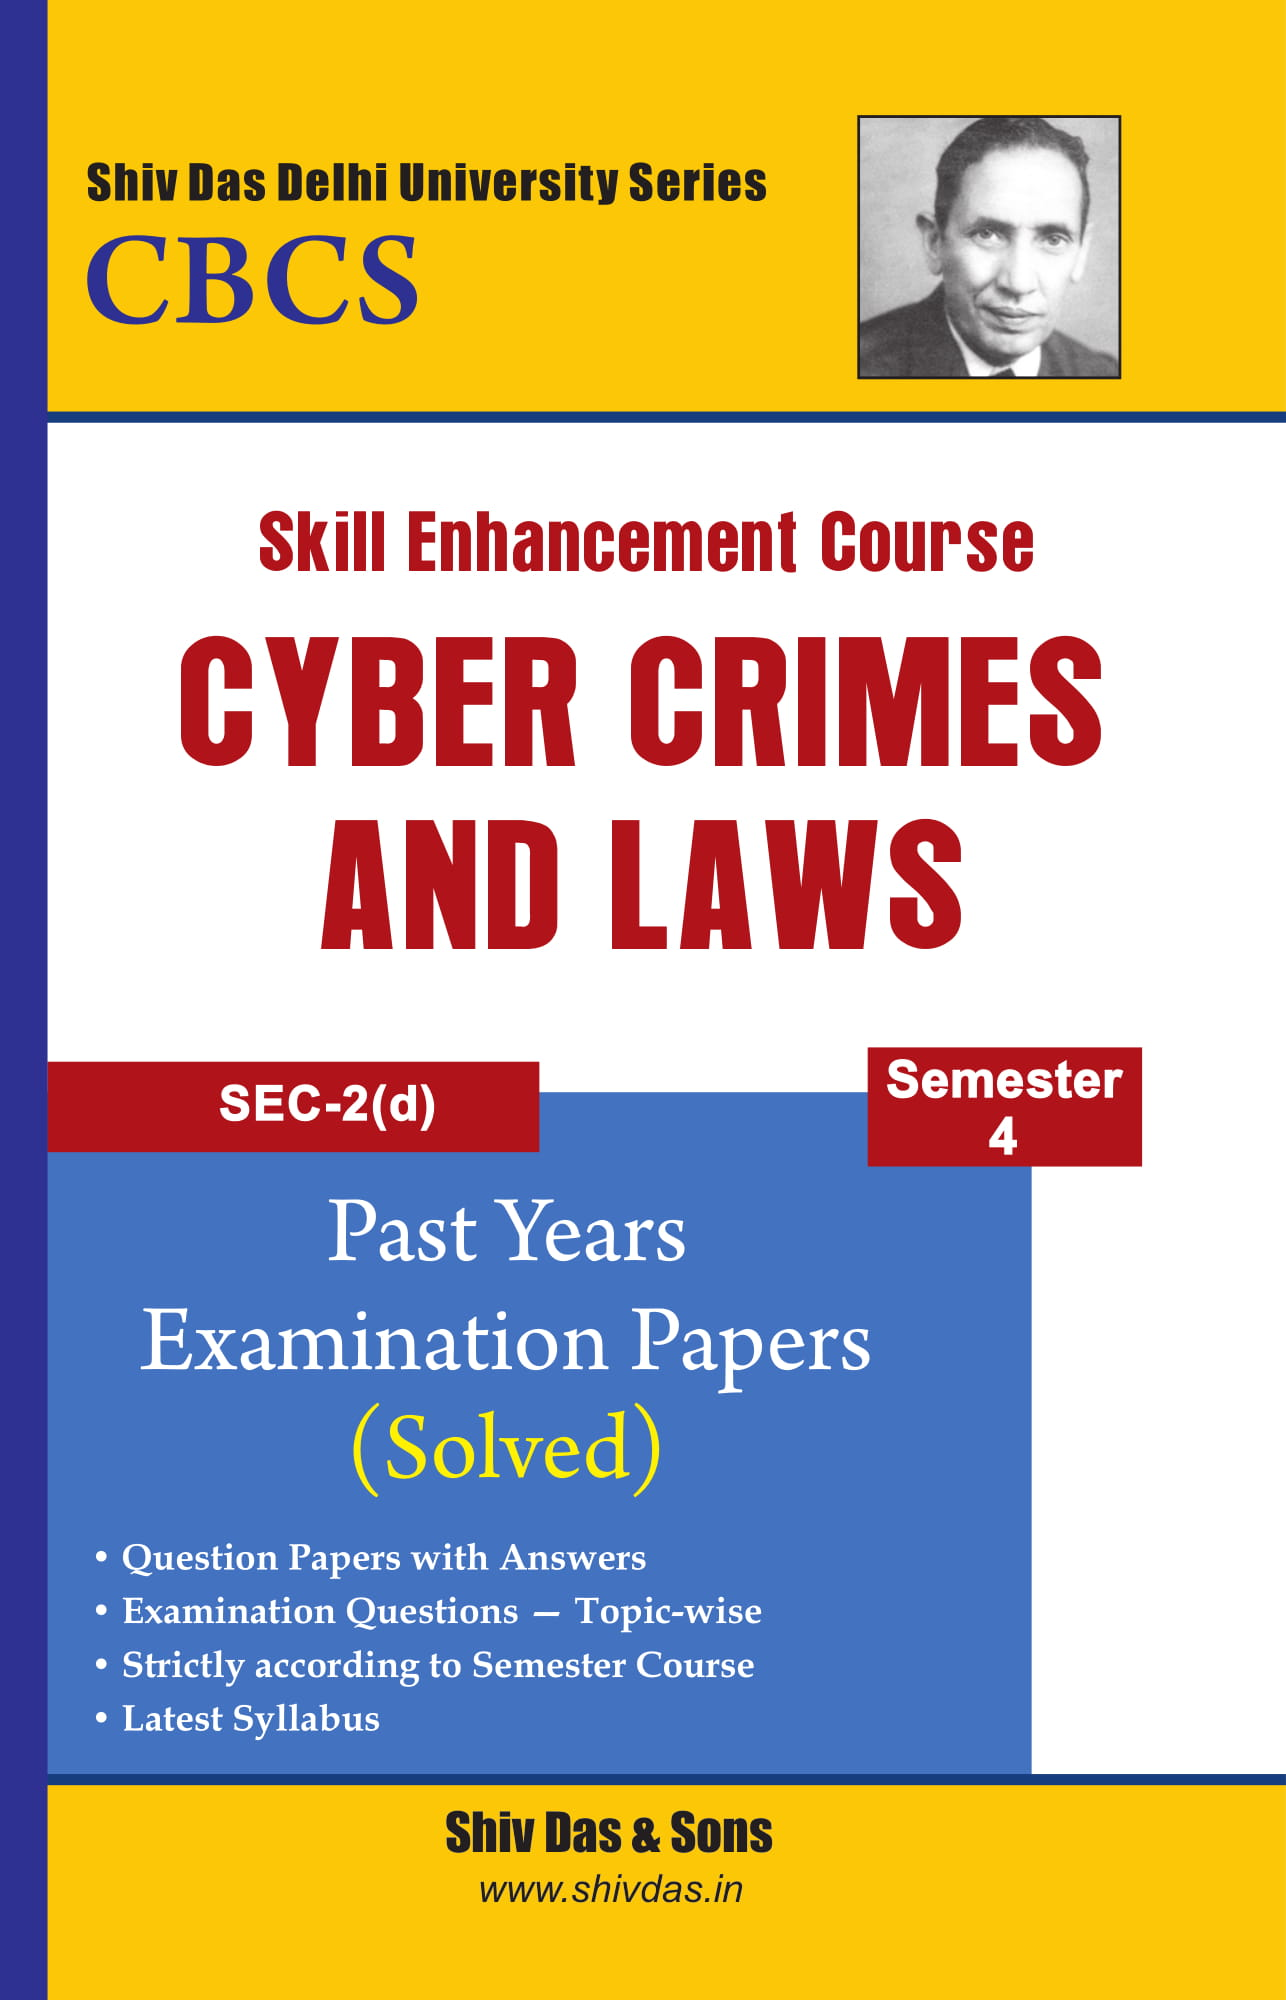 Cyber Crimes and Laws for B.Com Hons Semester 4